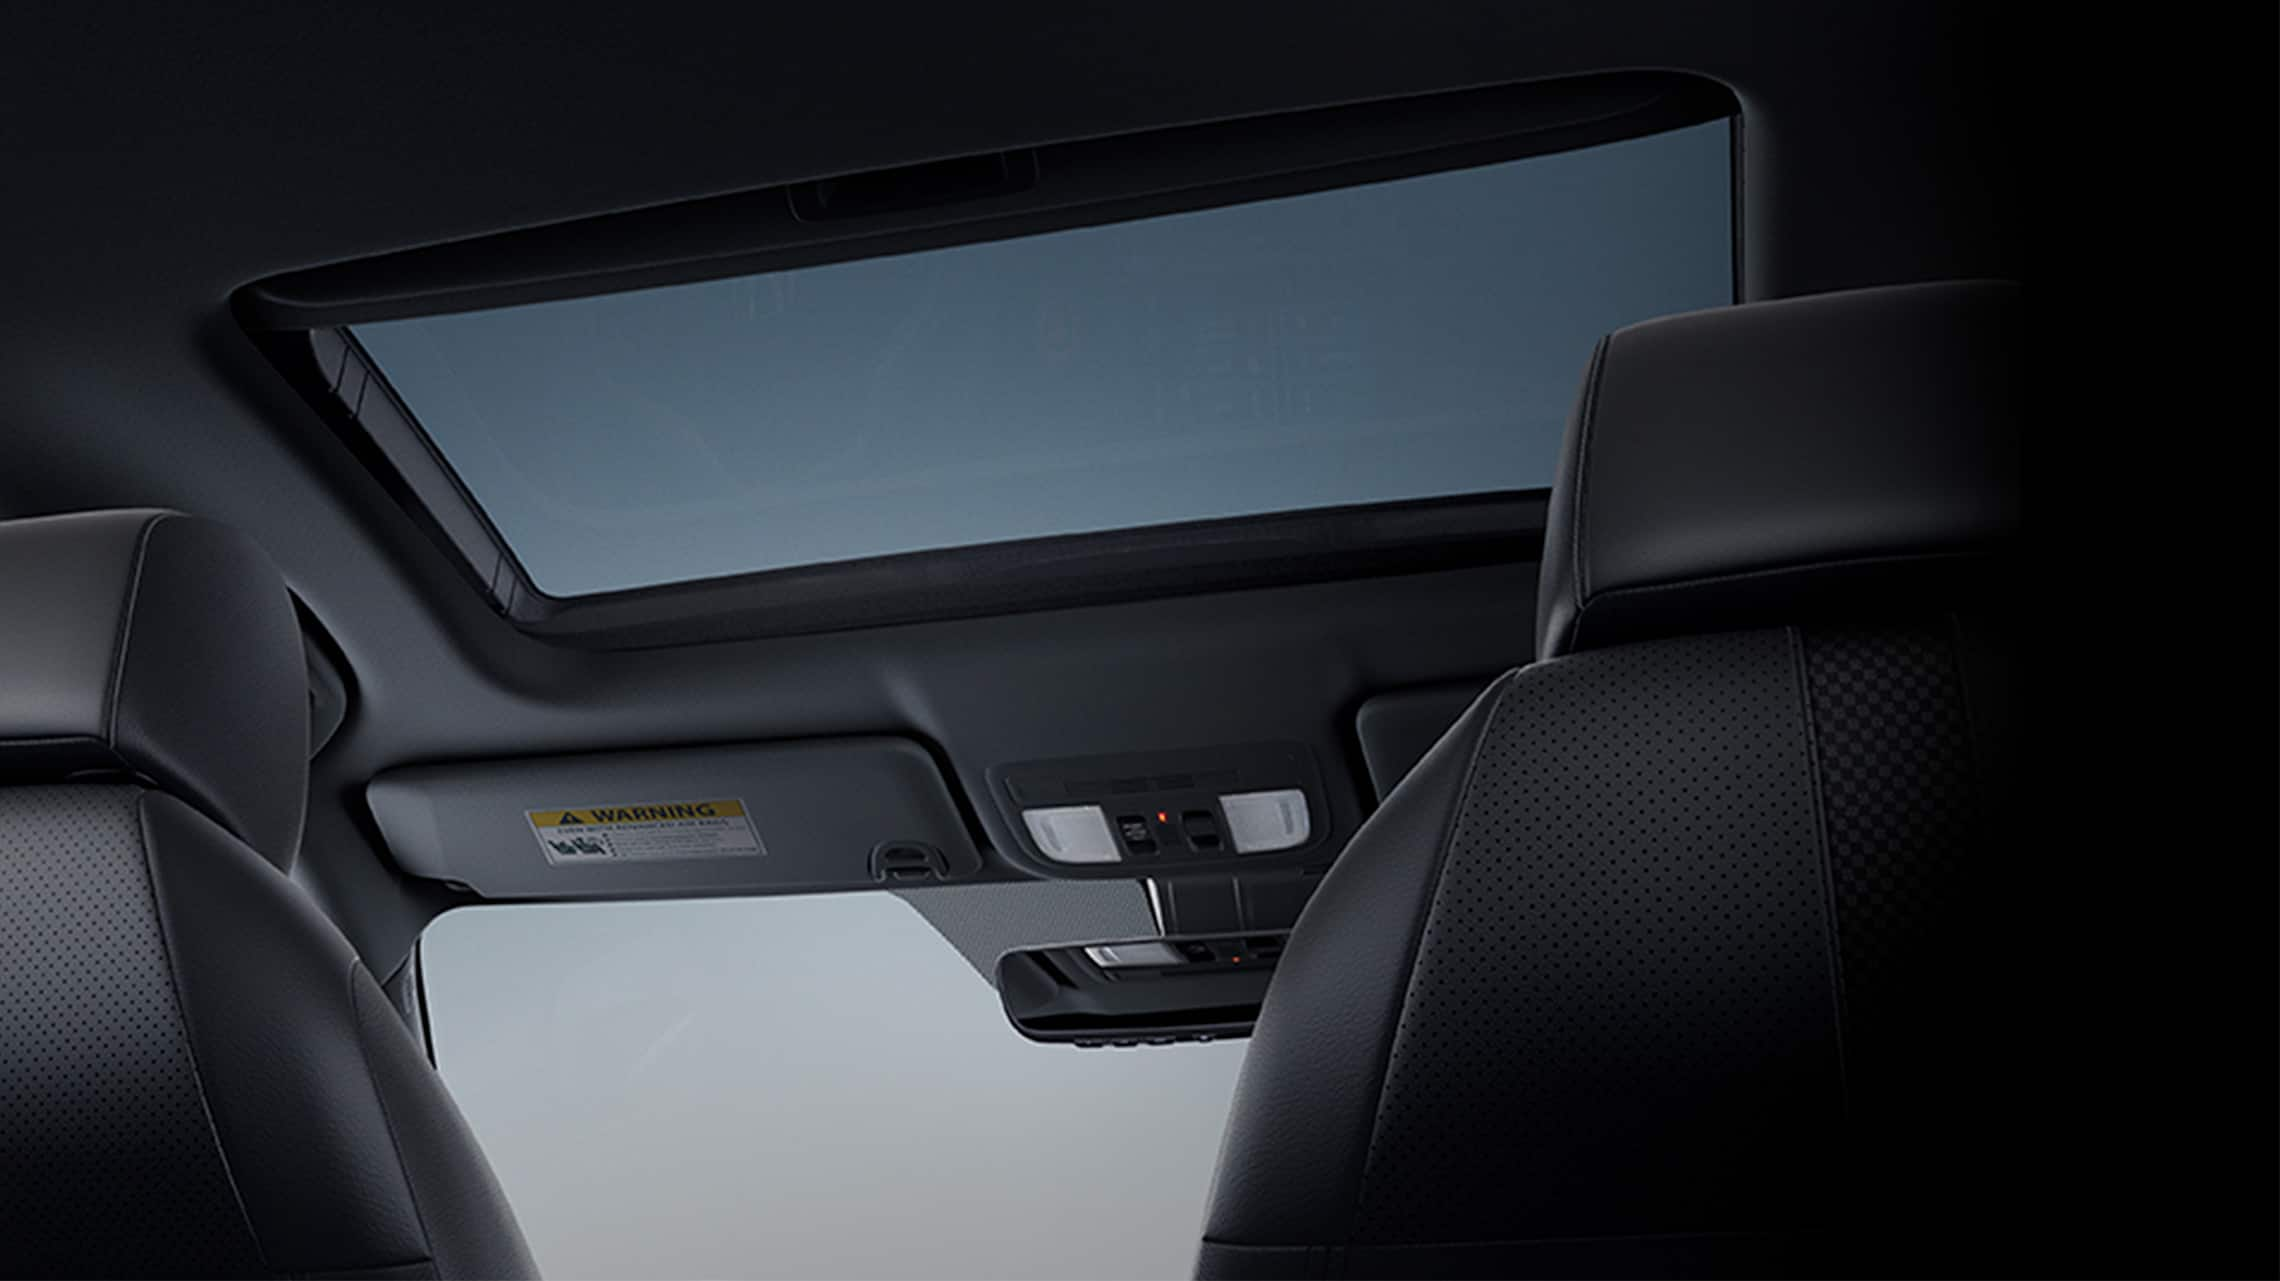 Power moonroof detail in the 2021 Honda Civic Sport Touring Hatchback.